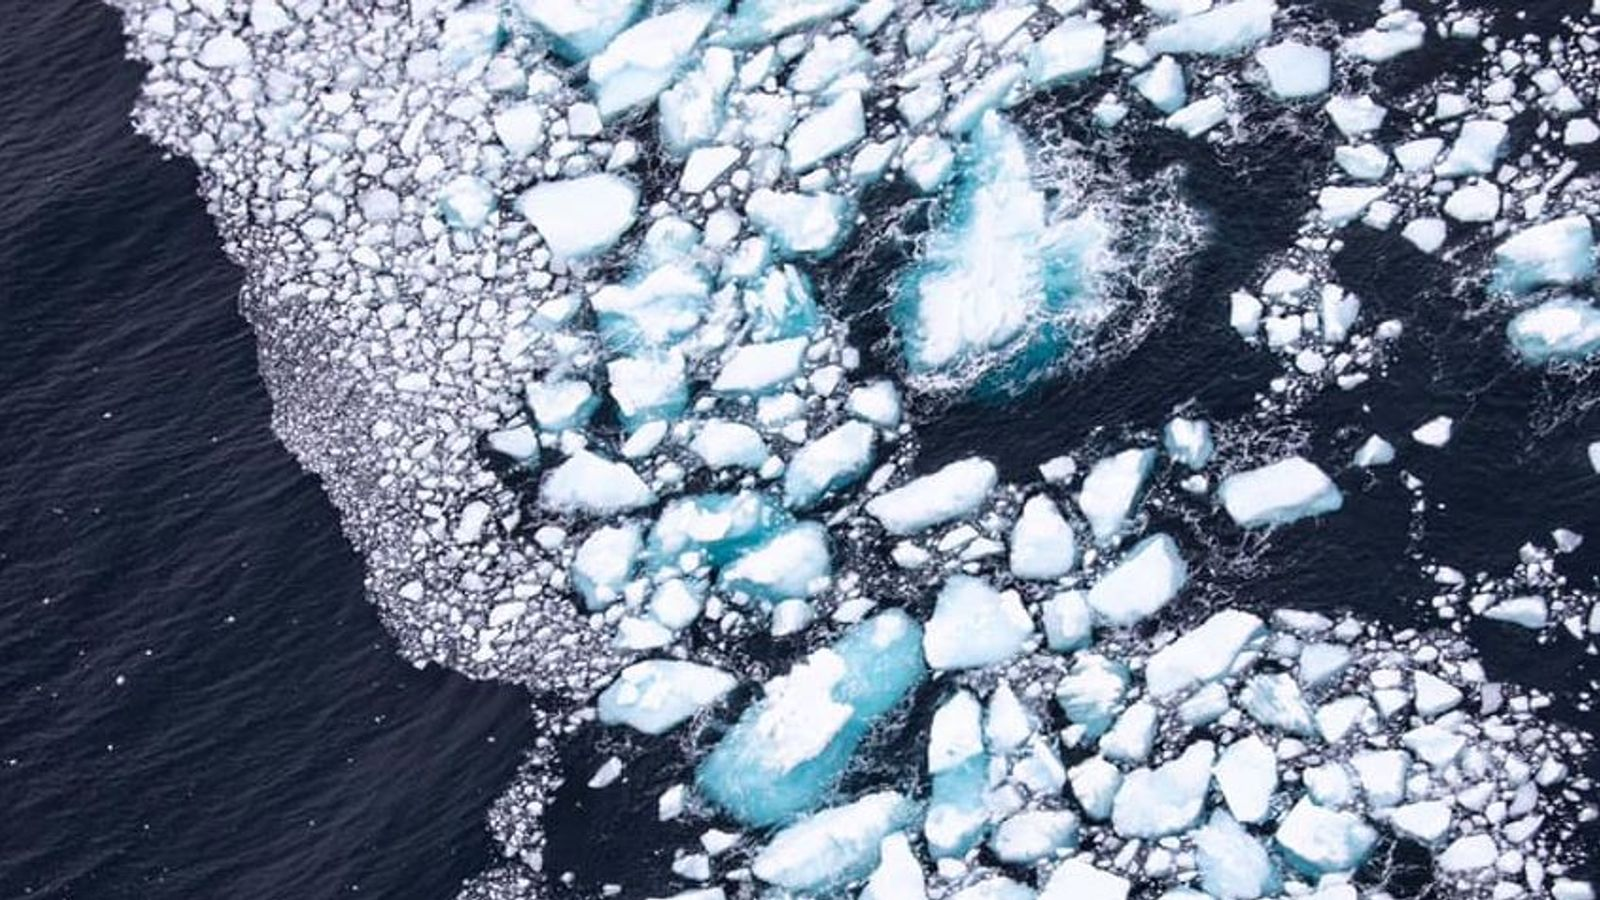 World's Largest Iceberg A68a Melts Away After Three Years, Satellite Data Shows